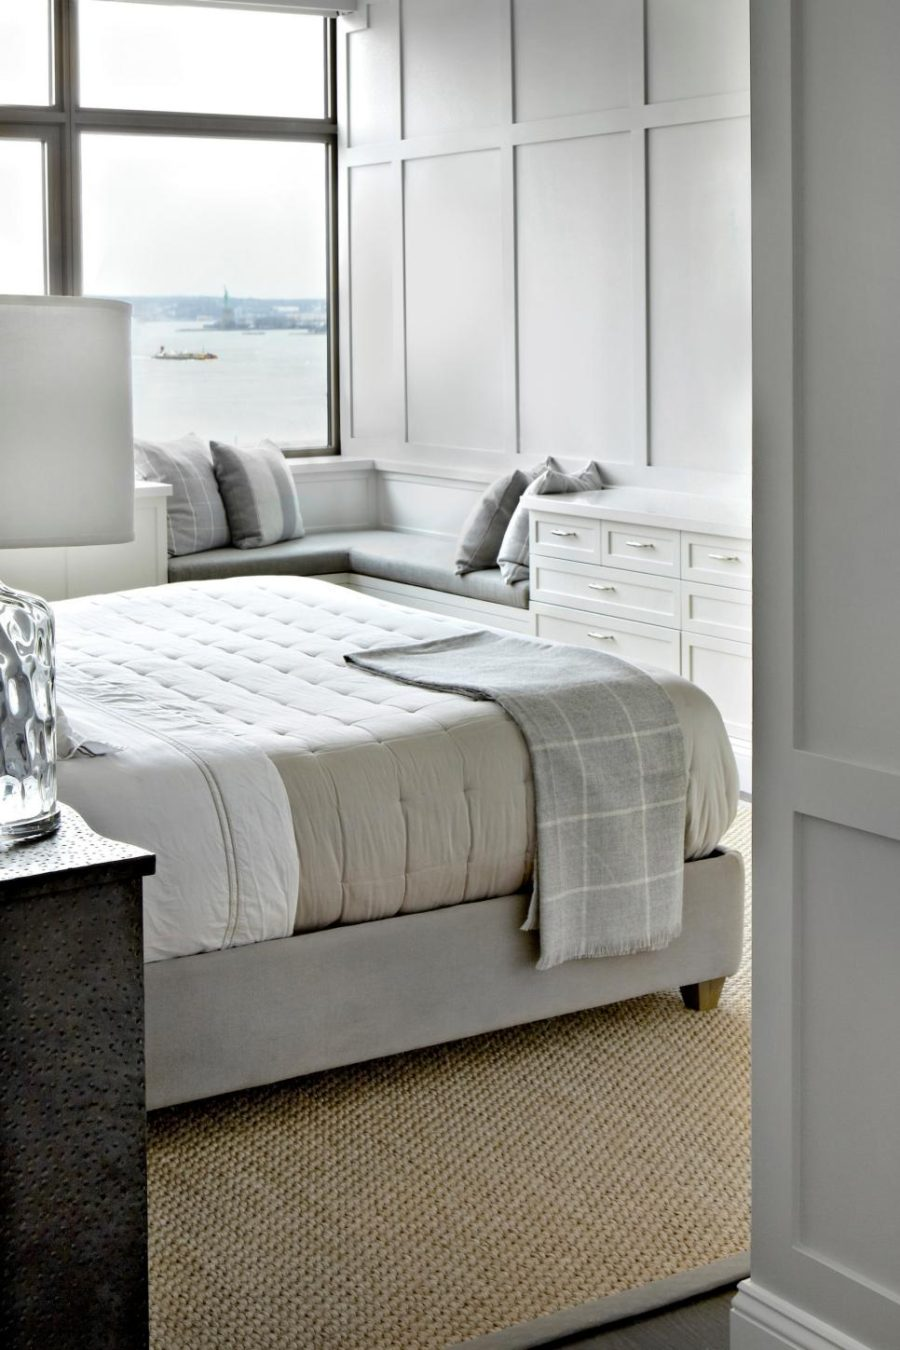 View In Gallery Susana Simonpietri Though Tiny This Contemporary Bedroom ...